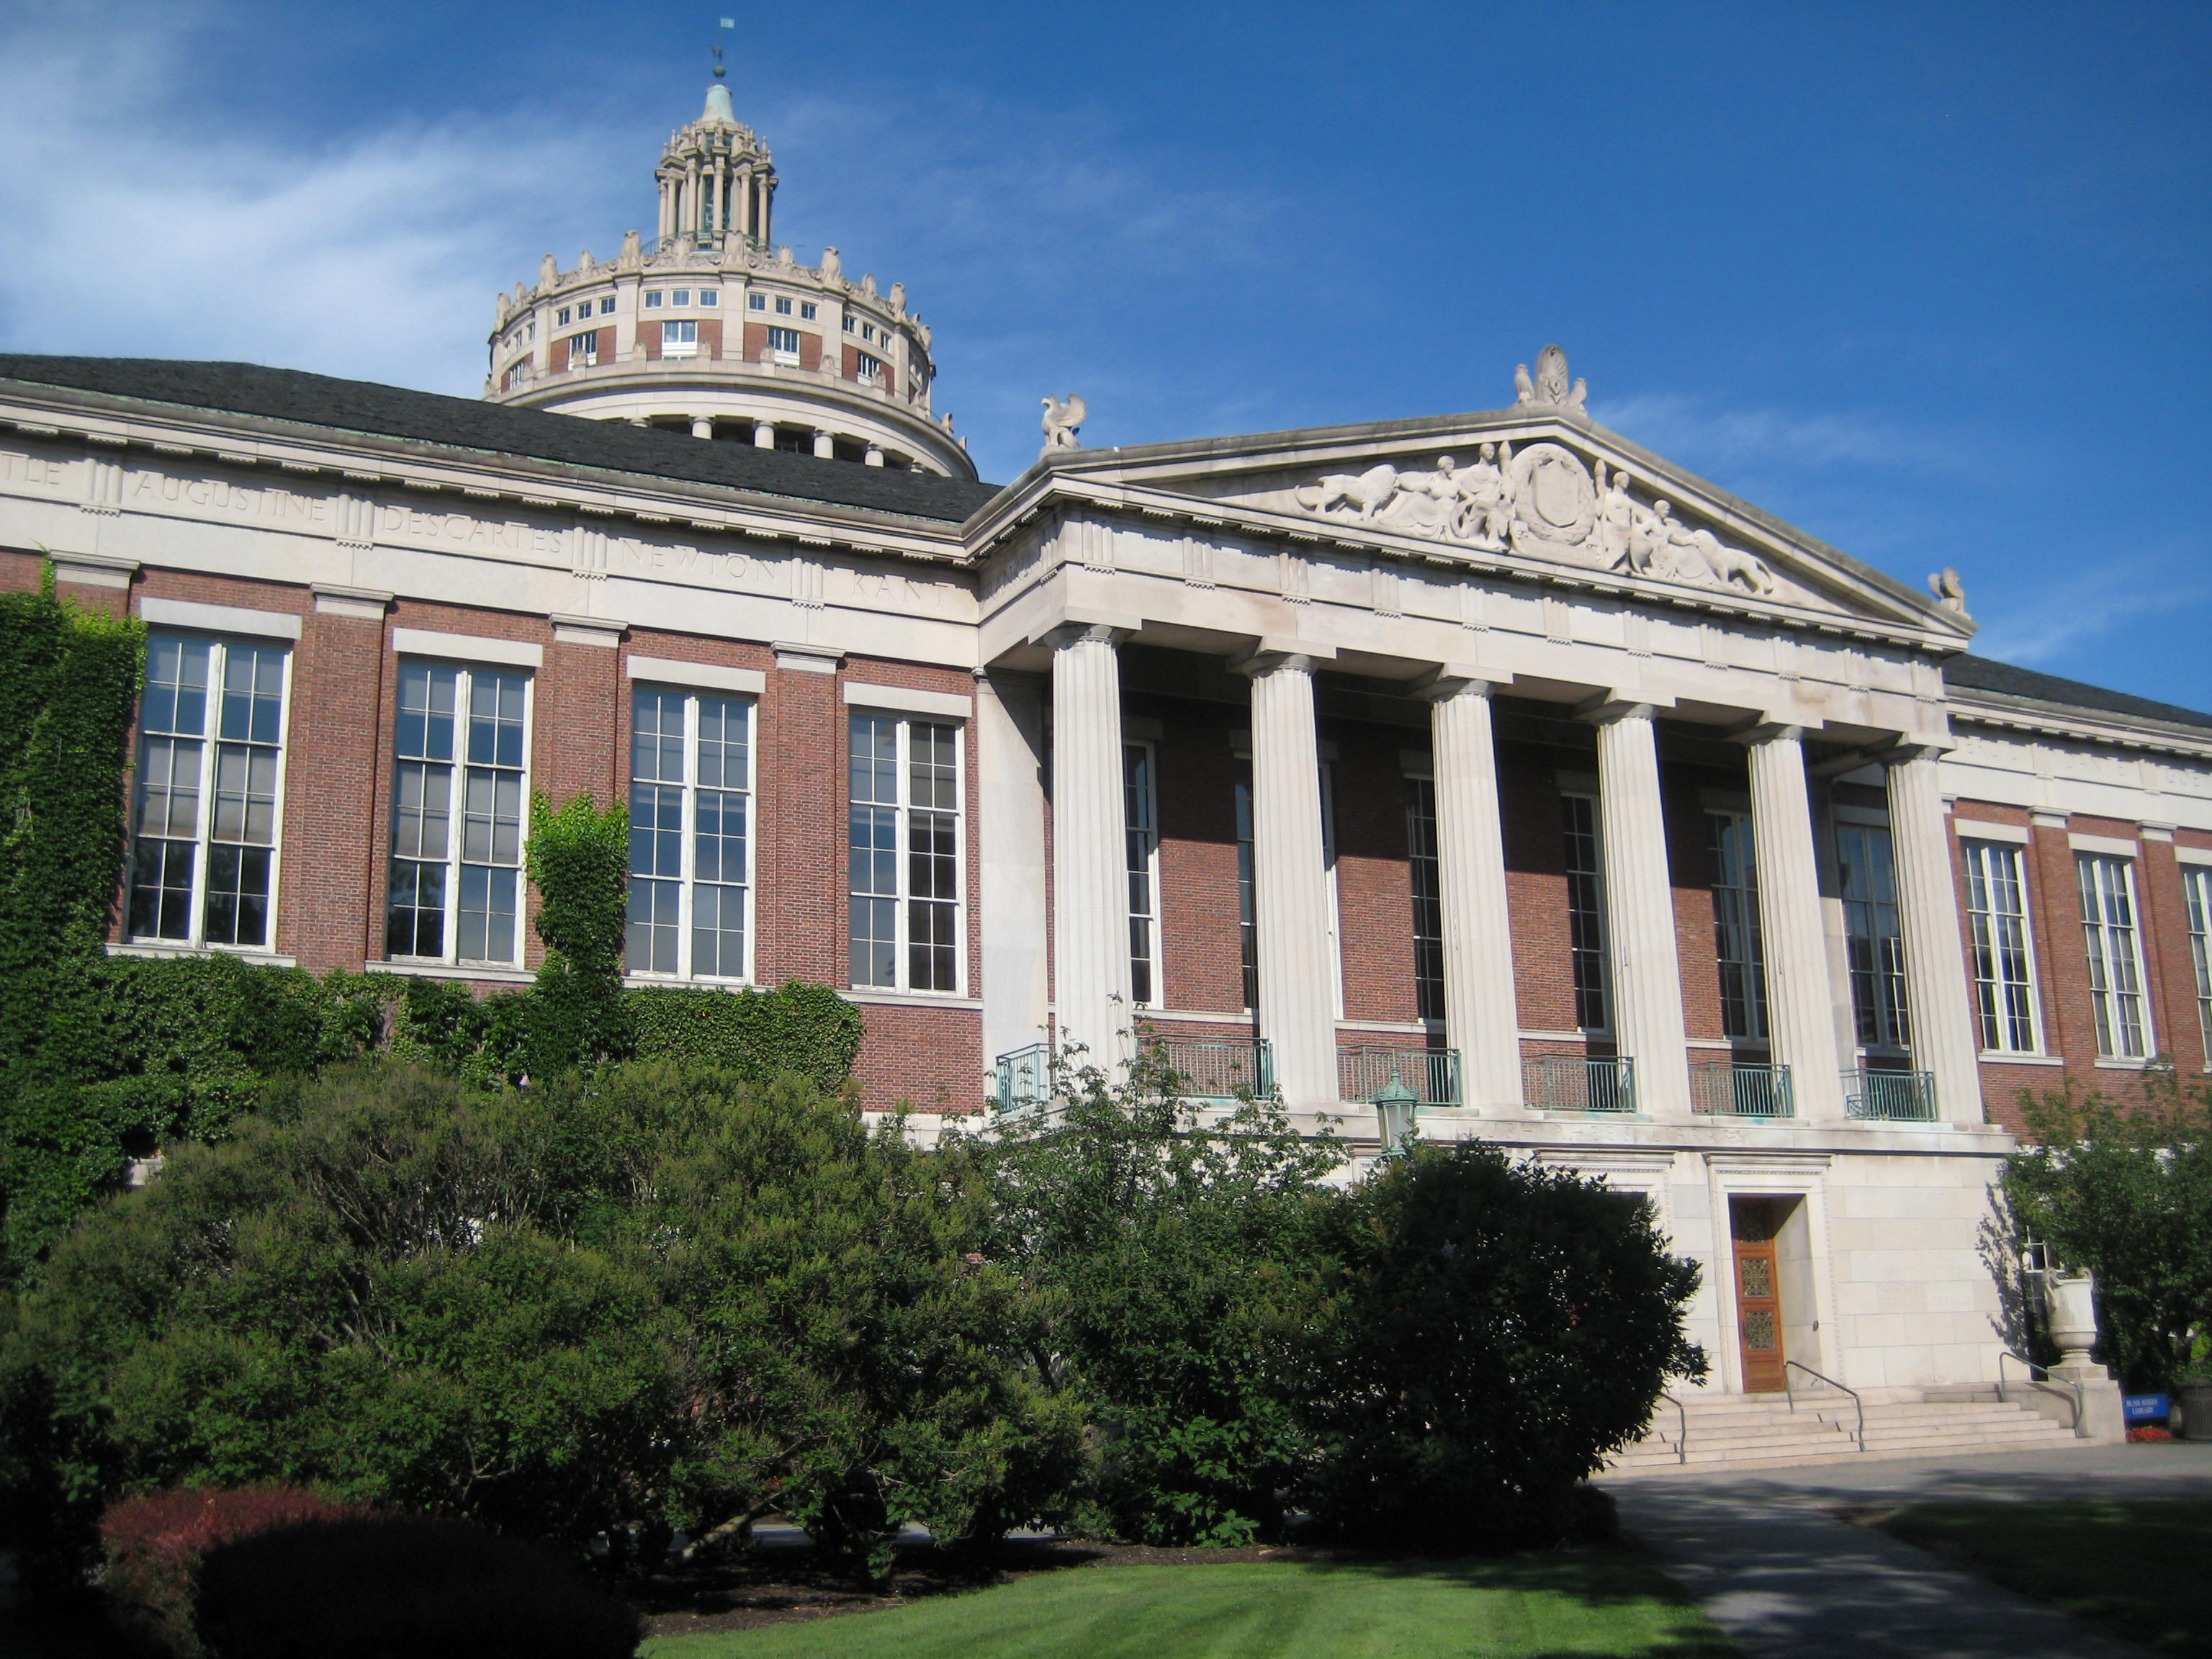 Exterior Shot of University of Rochester Building